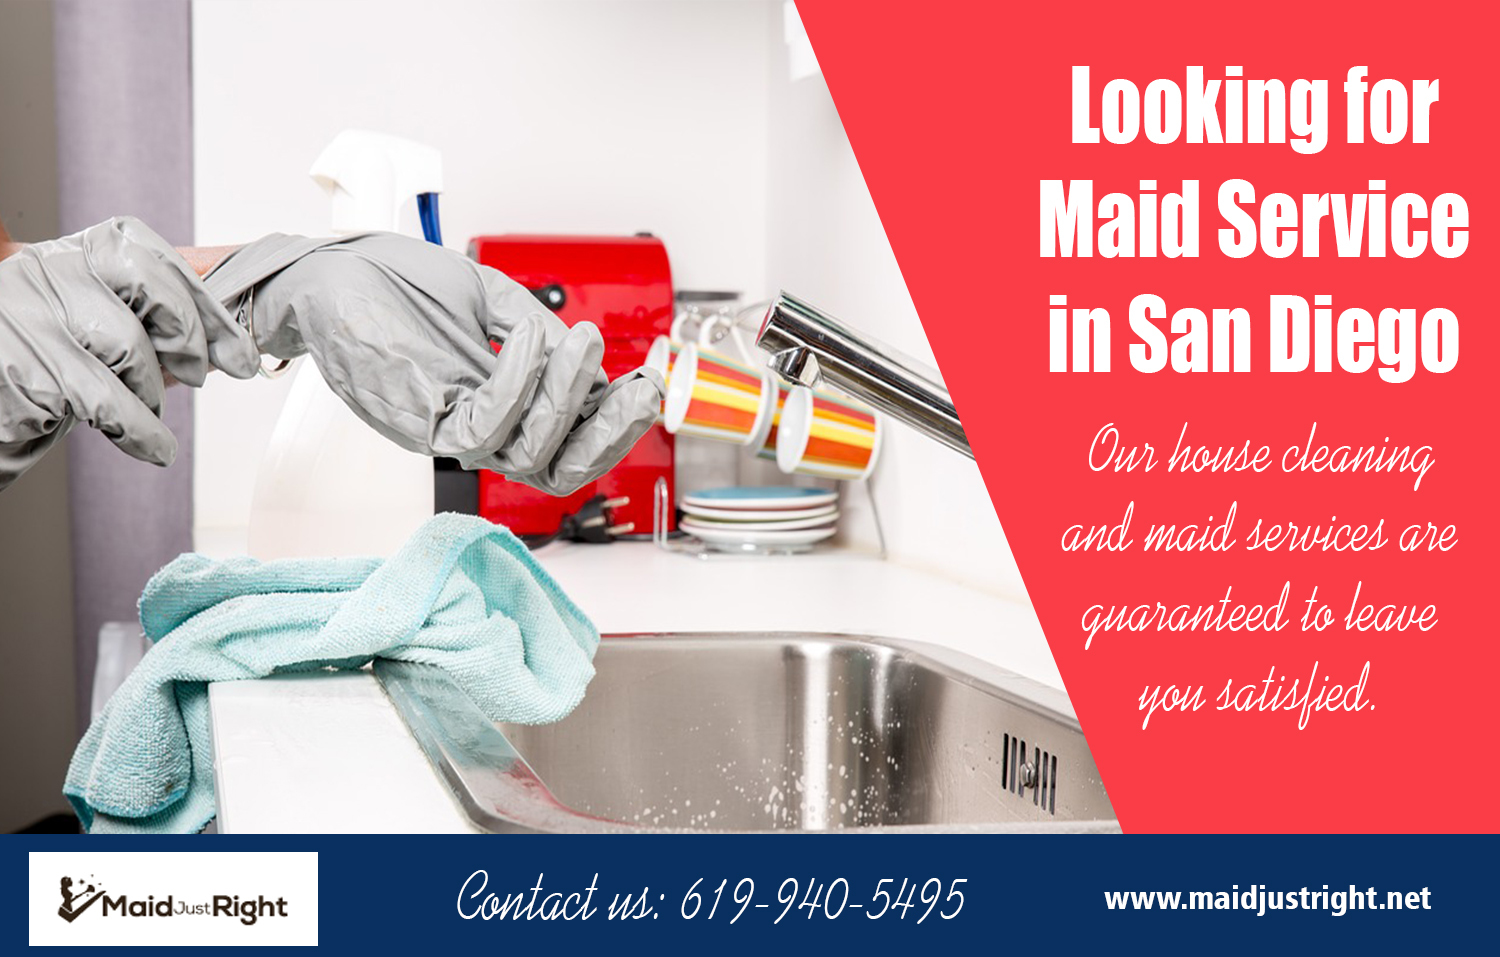 Looking For Maid Service In San Diego | Call Us - 619-940-5495 | maidjustright.net